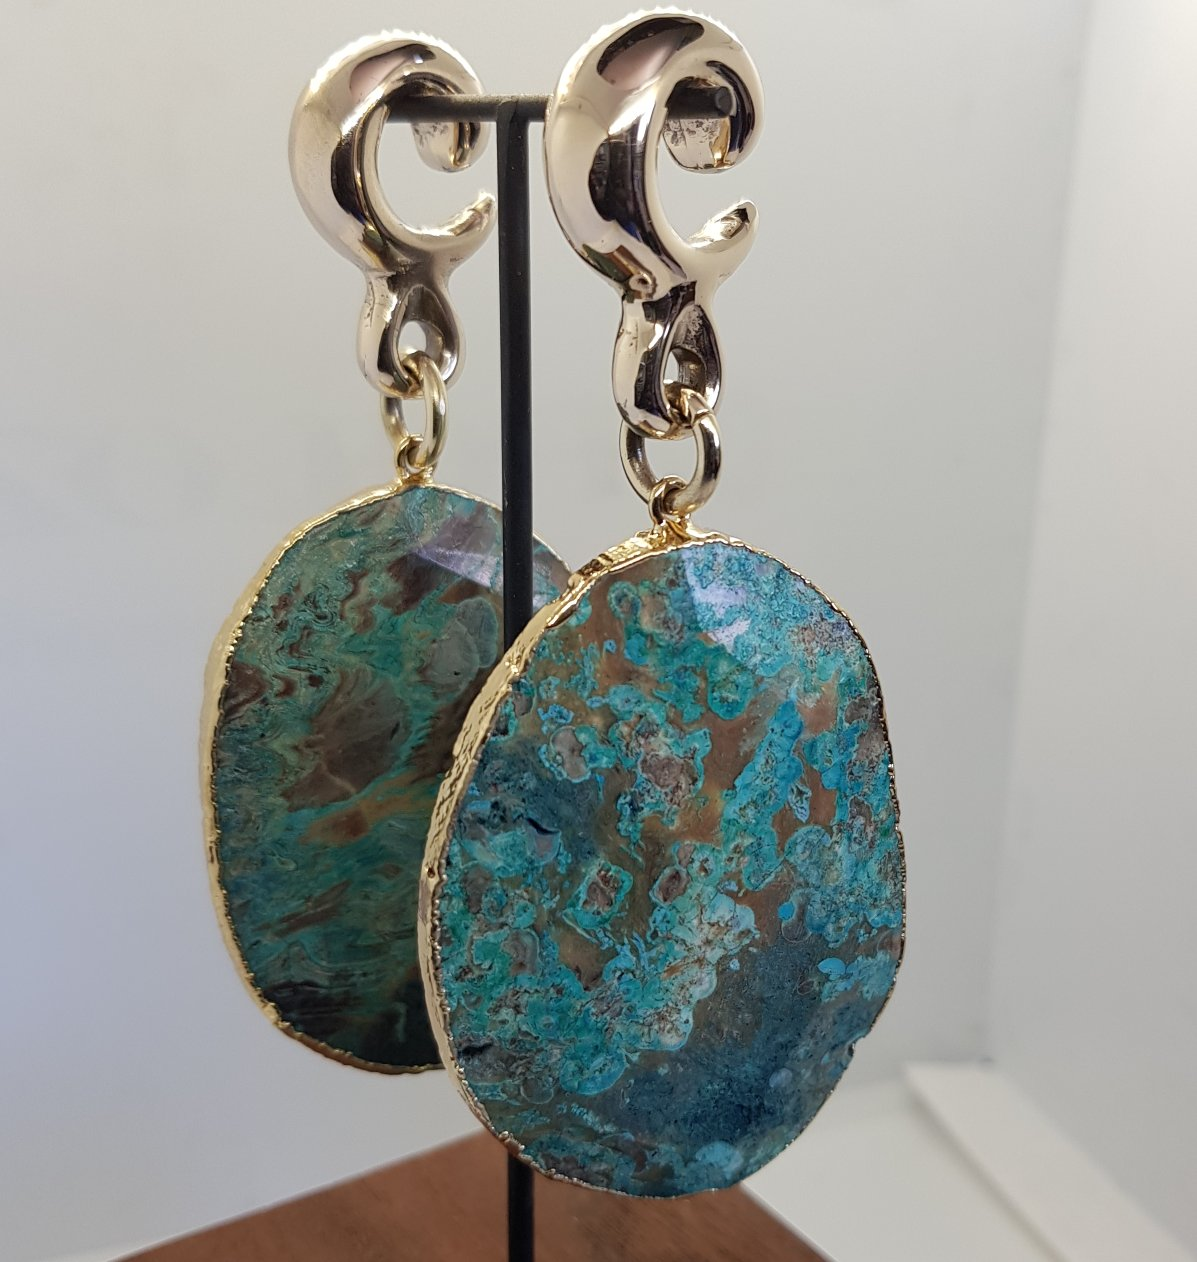 Hanging Weights - Chrysocolla